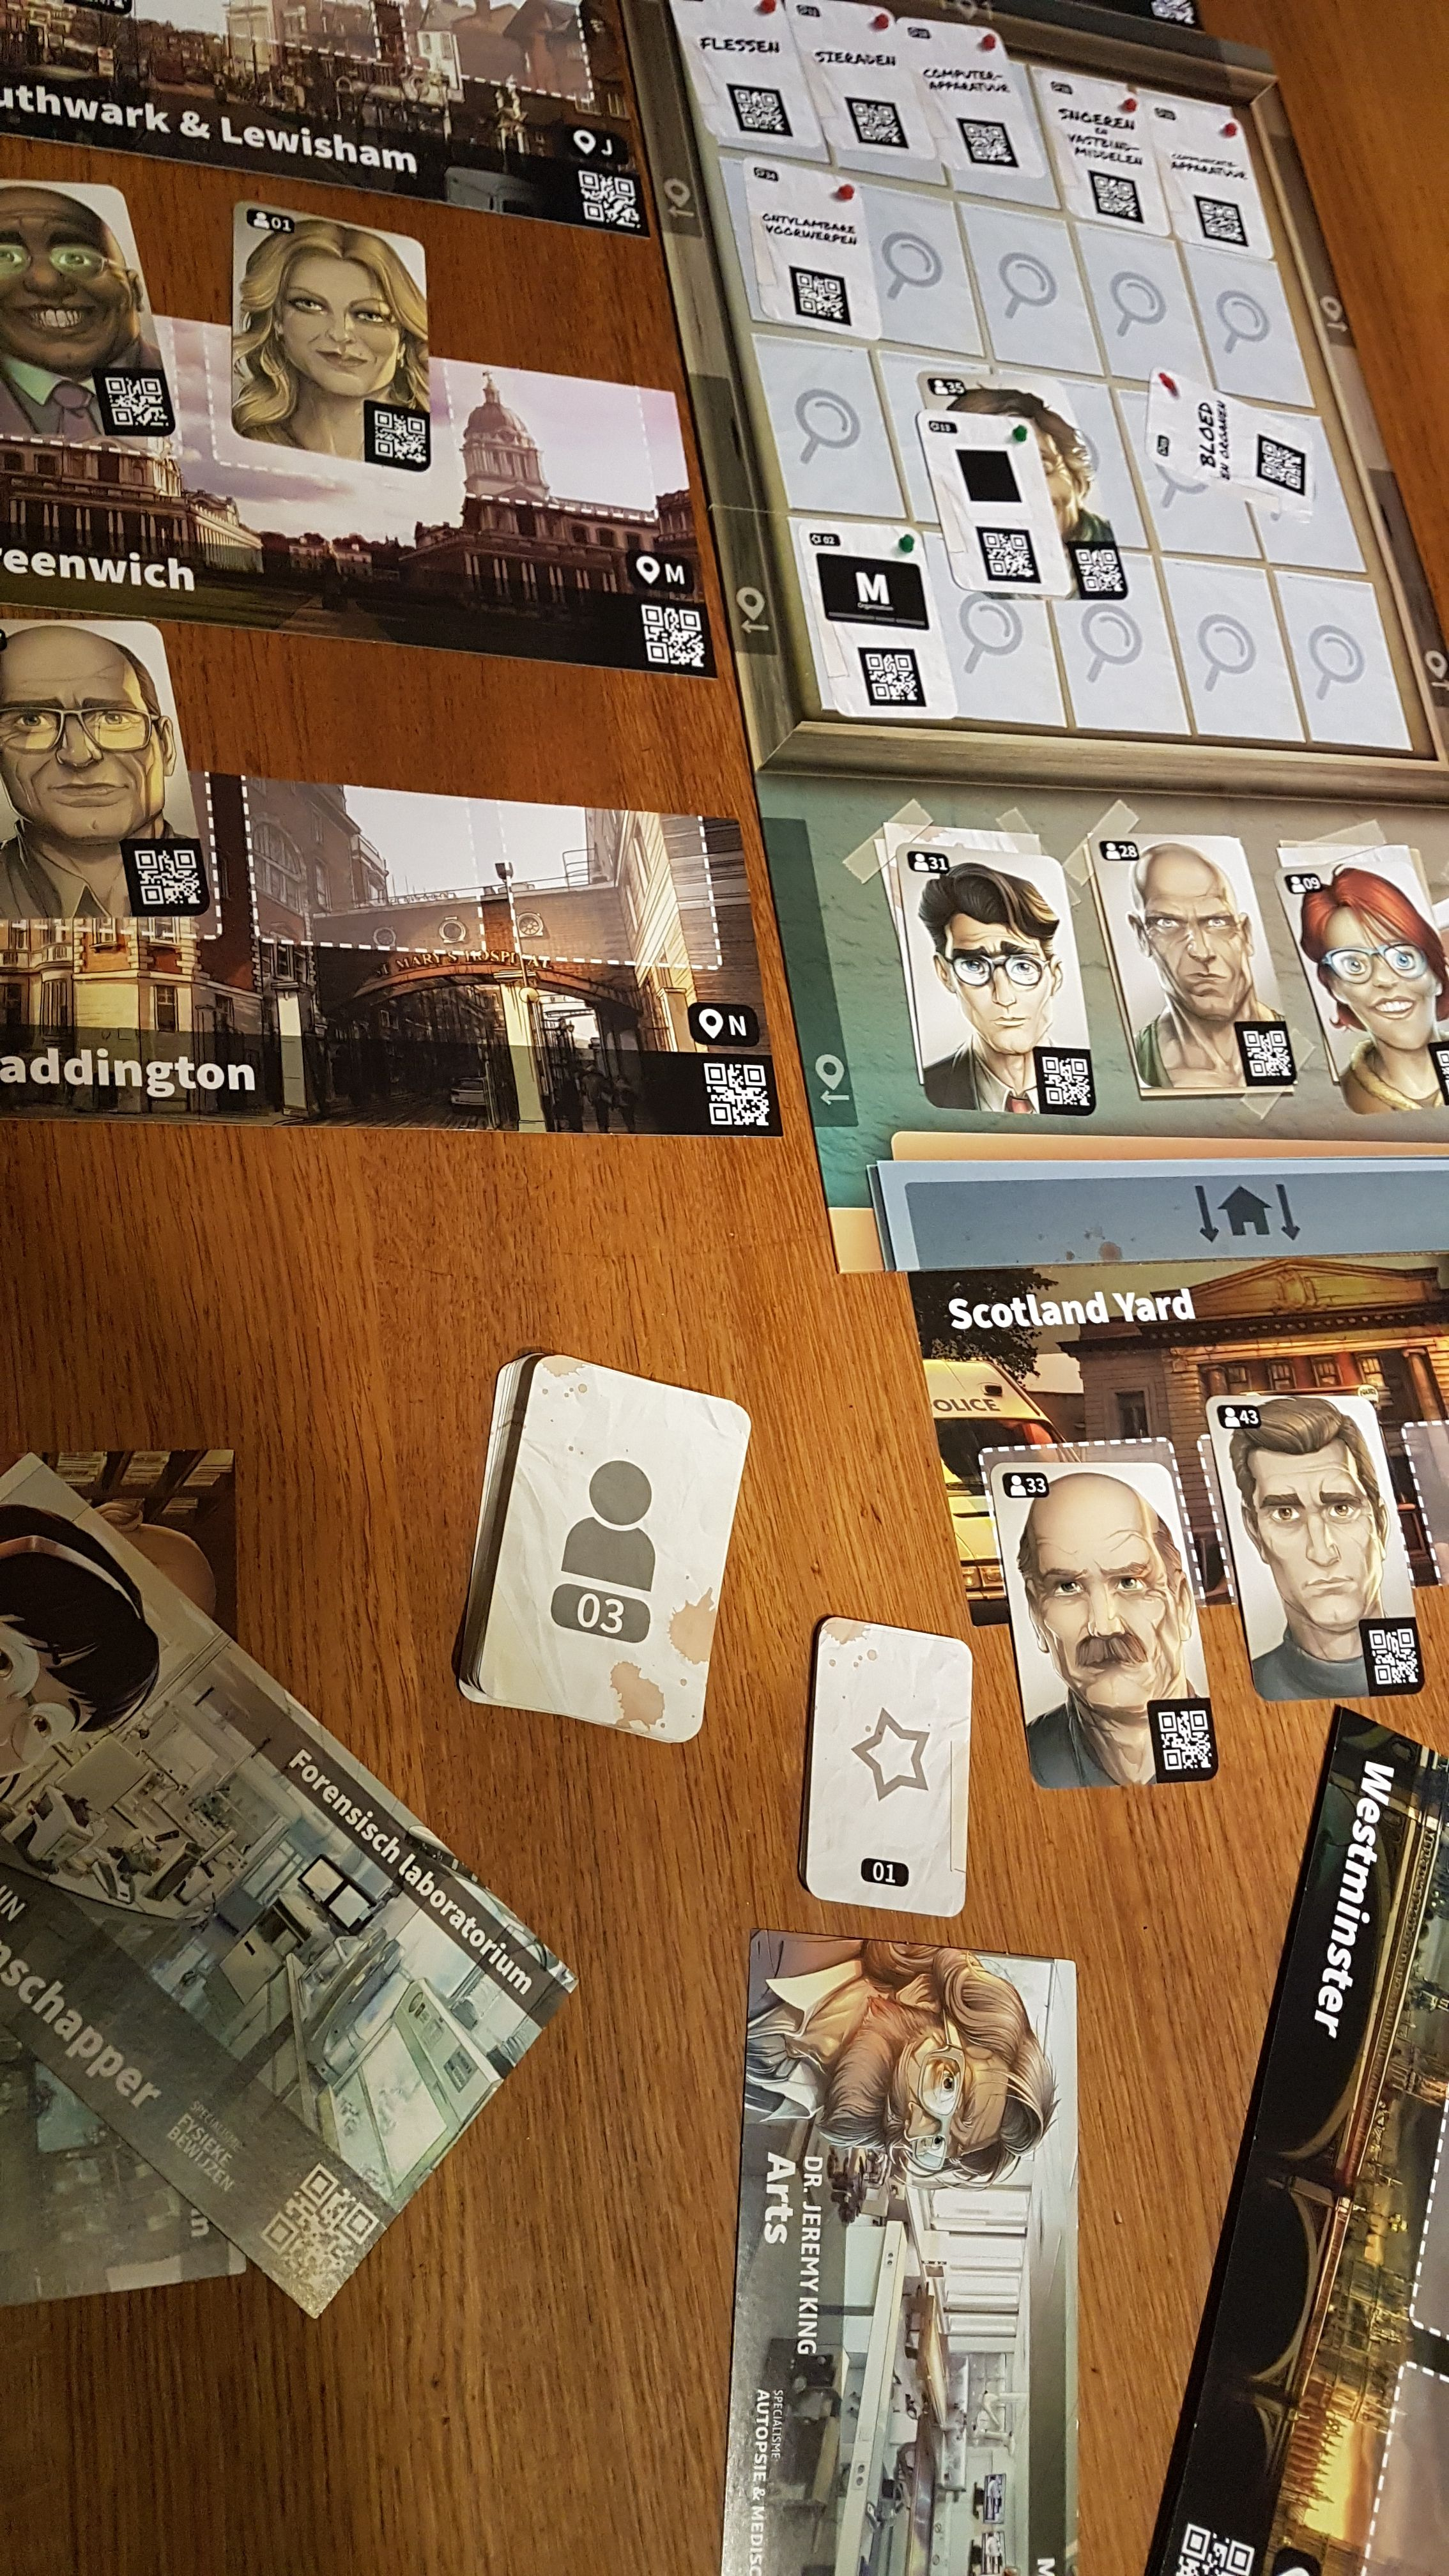 chronicles of crime board game with app artificial